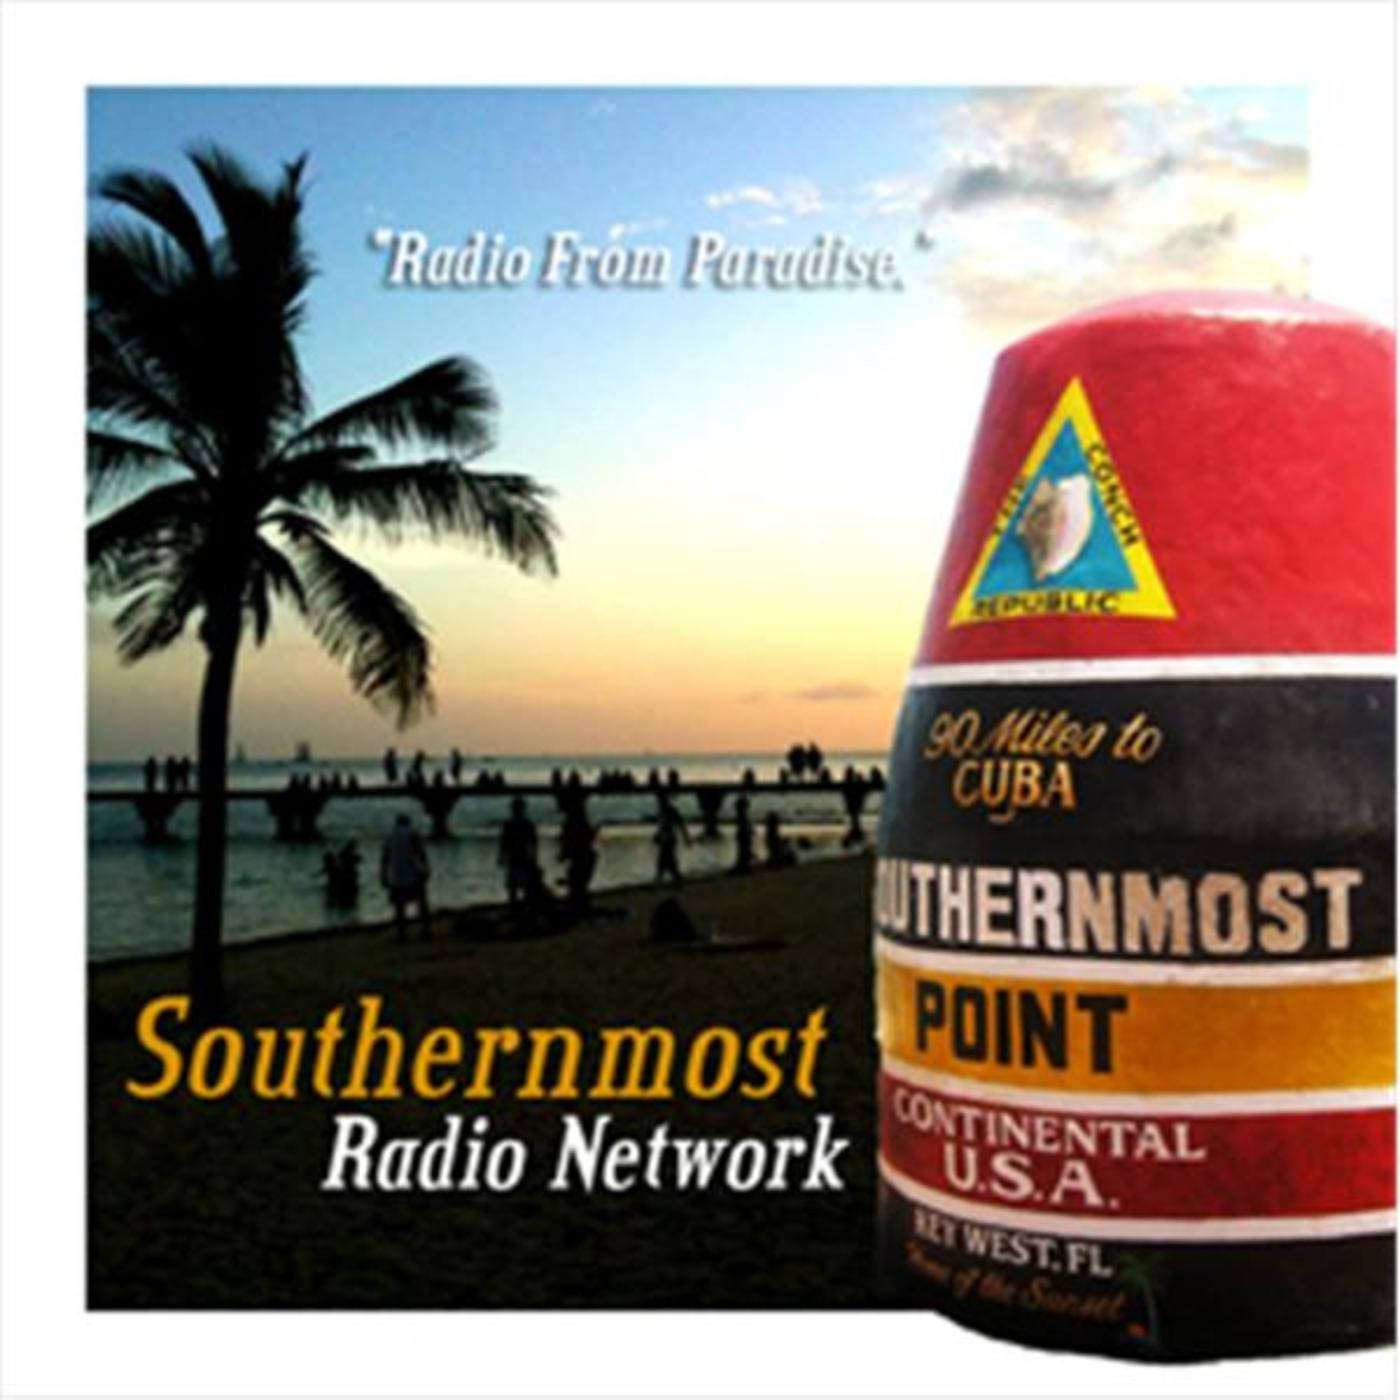 Southernmost Radio Network